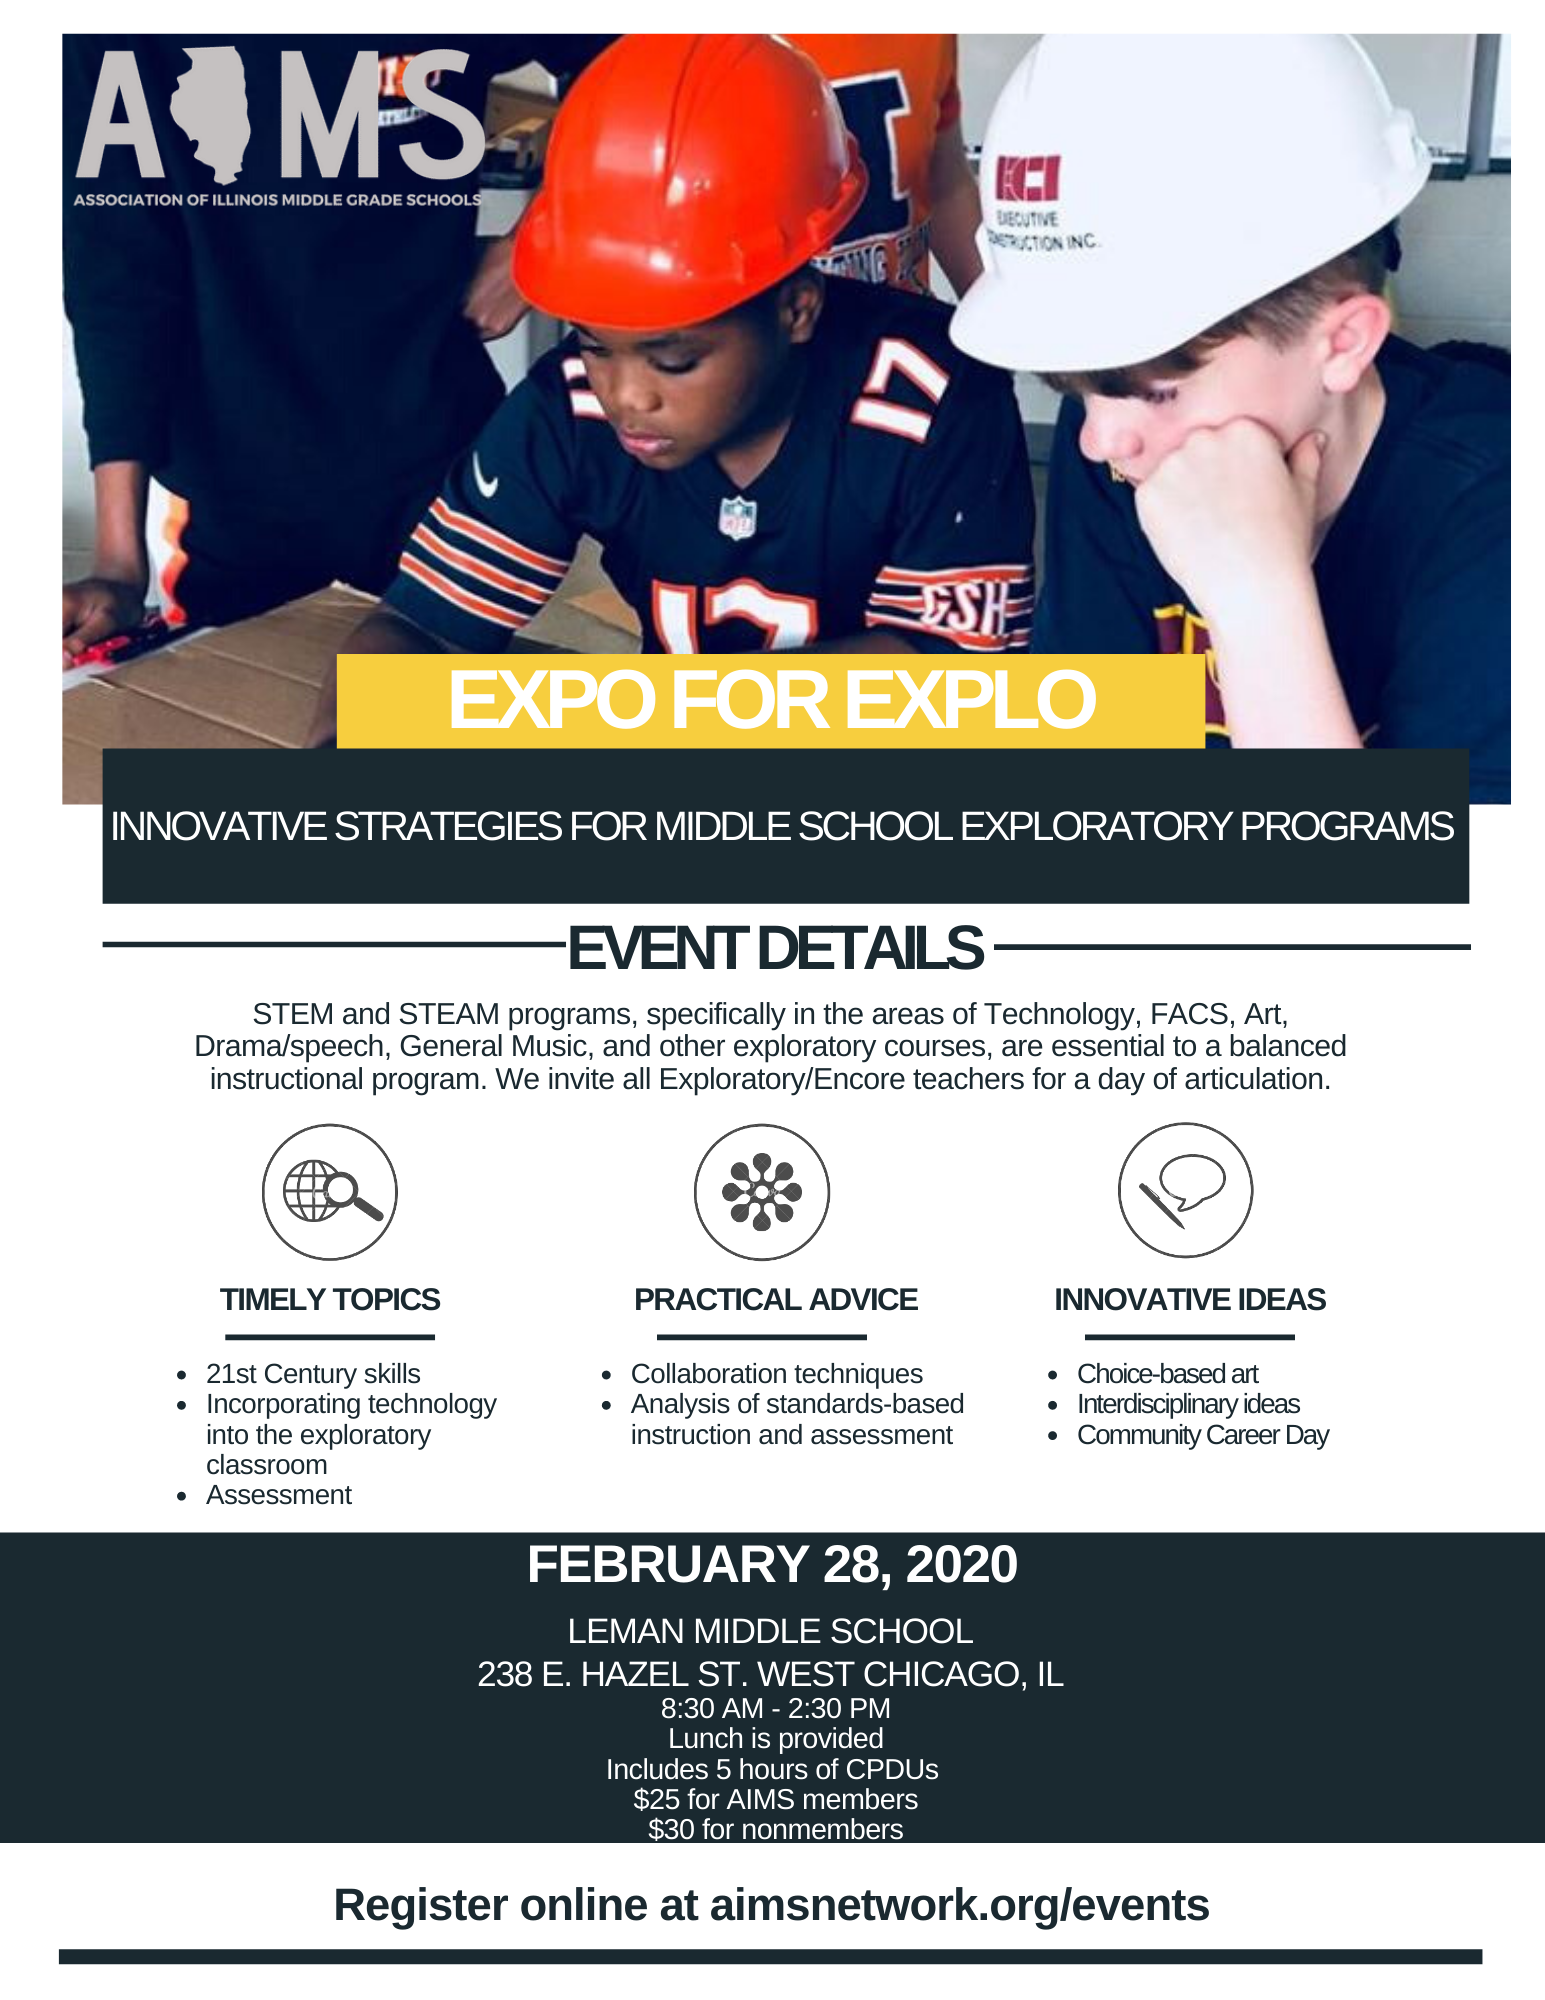 EXPO FOR EXPLO